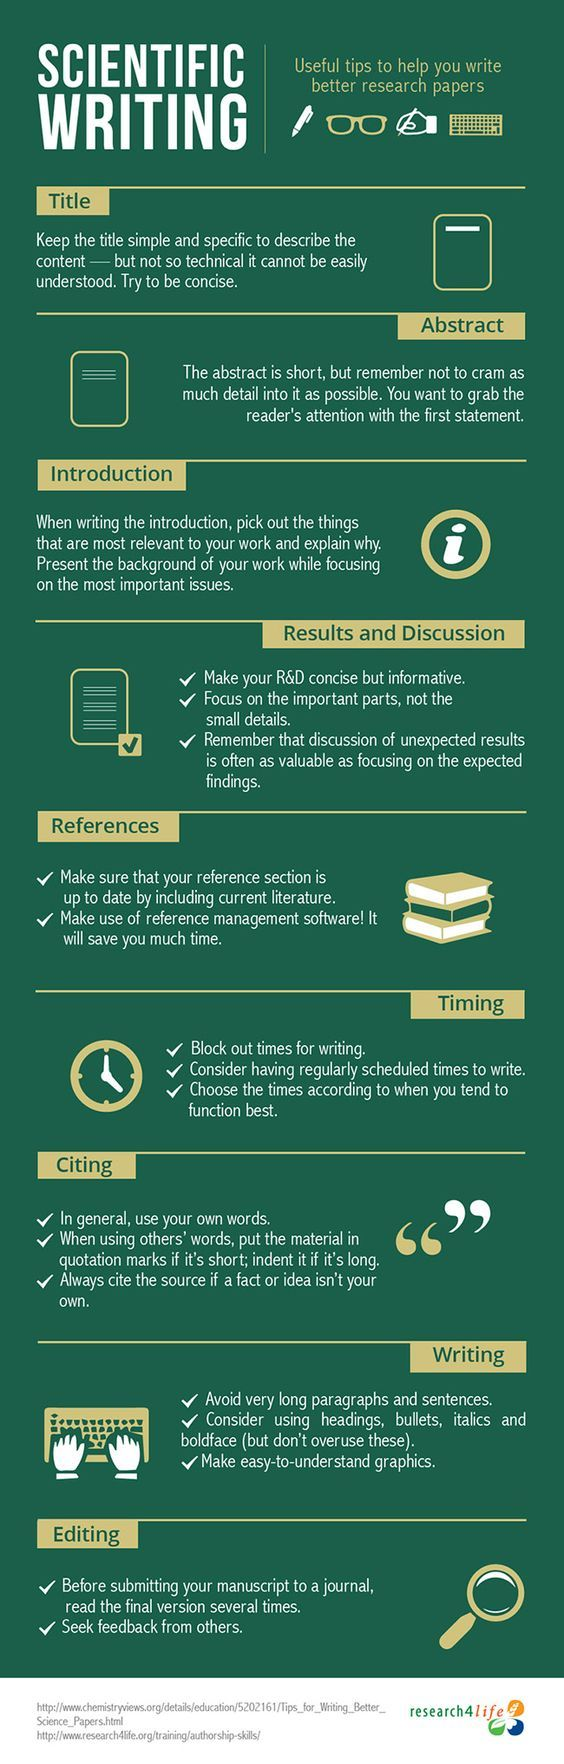 Best 25+ Paper writing service ideas on Pinterest | Cool writing ...